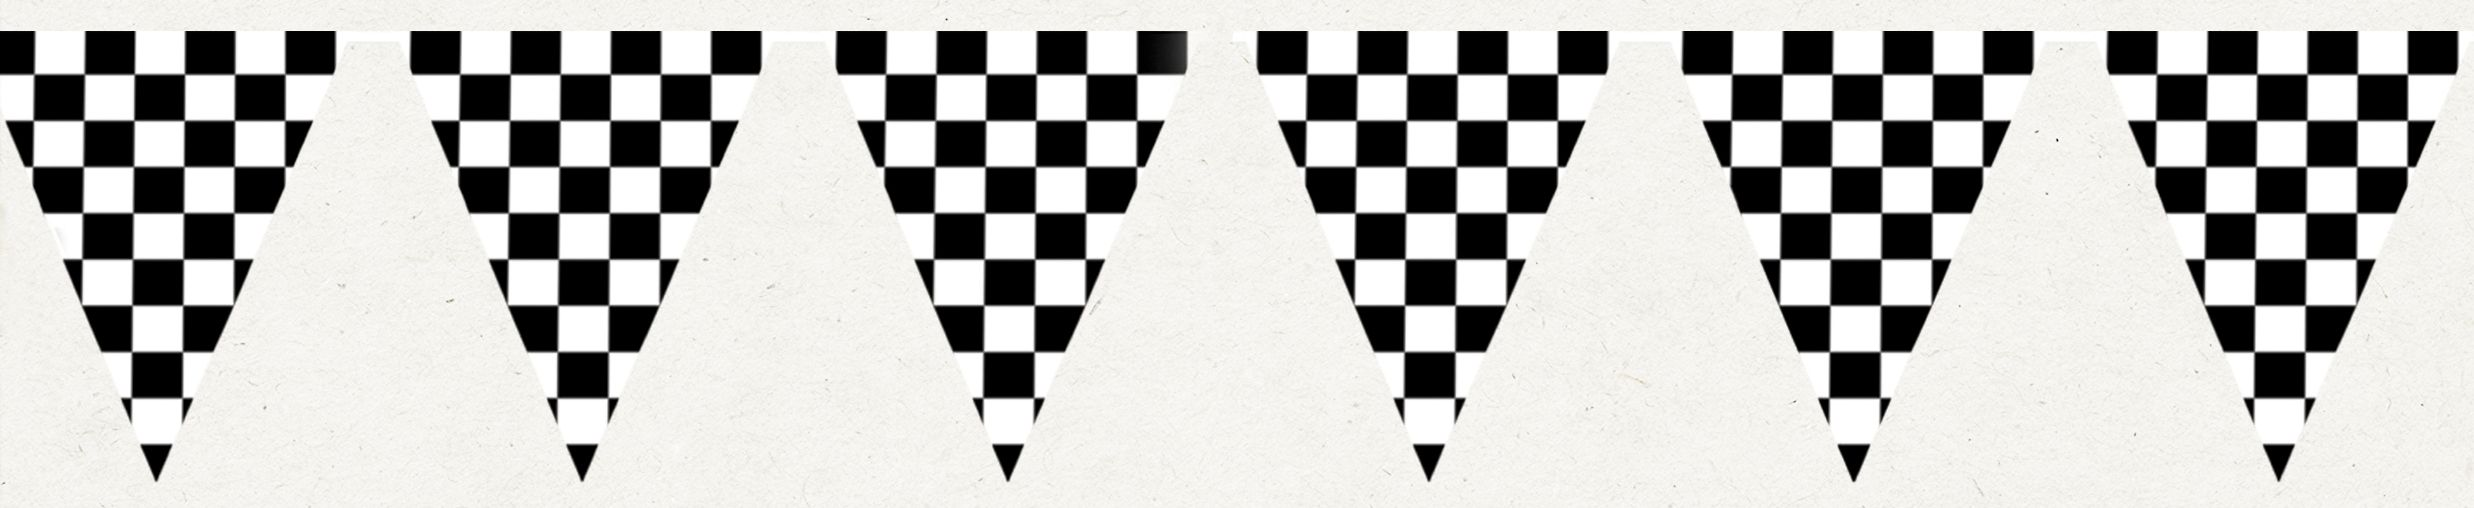 Checkered Flag Banner Png Google Search Flag Banners Checkered Flag Checkered